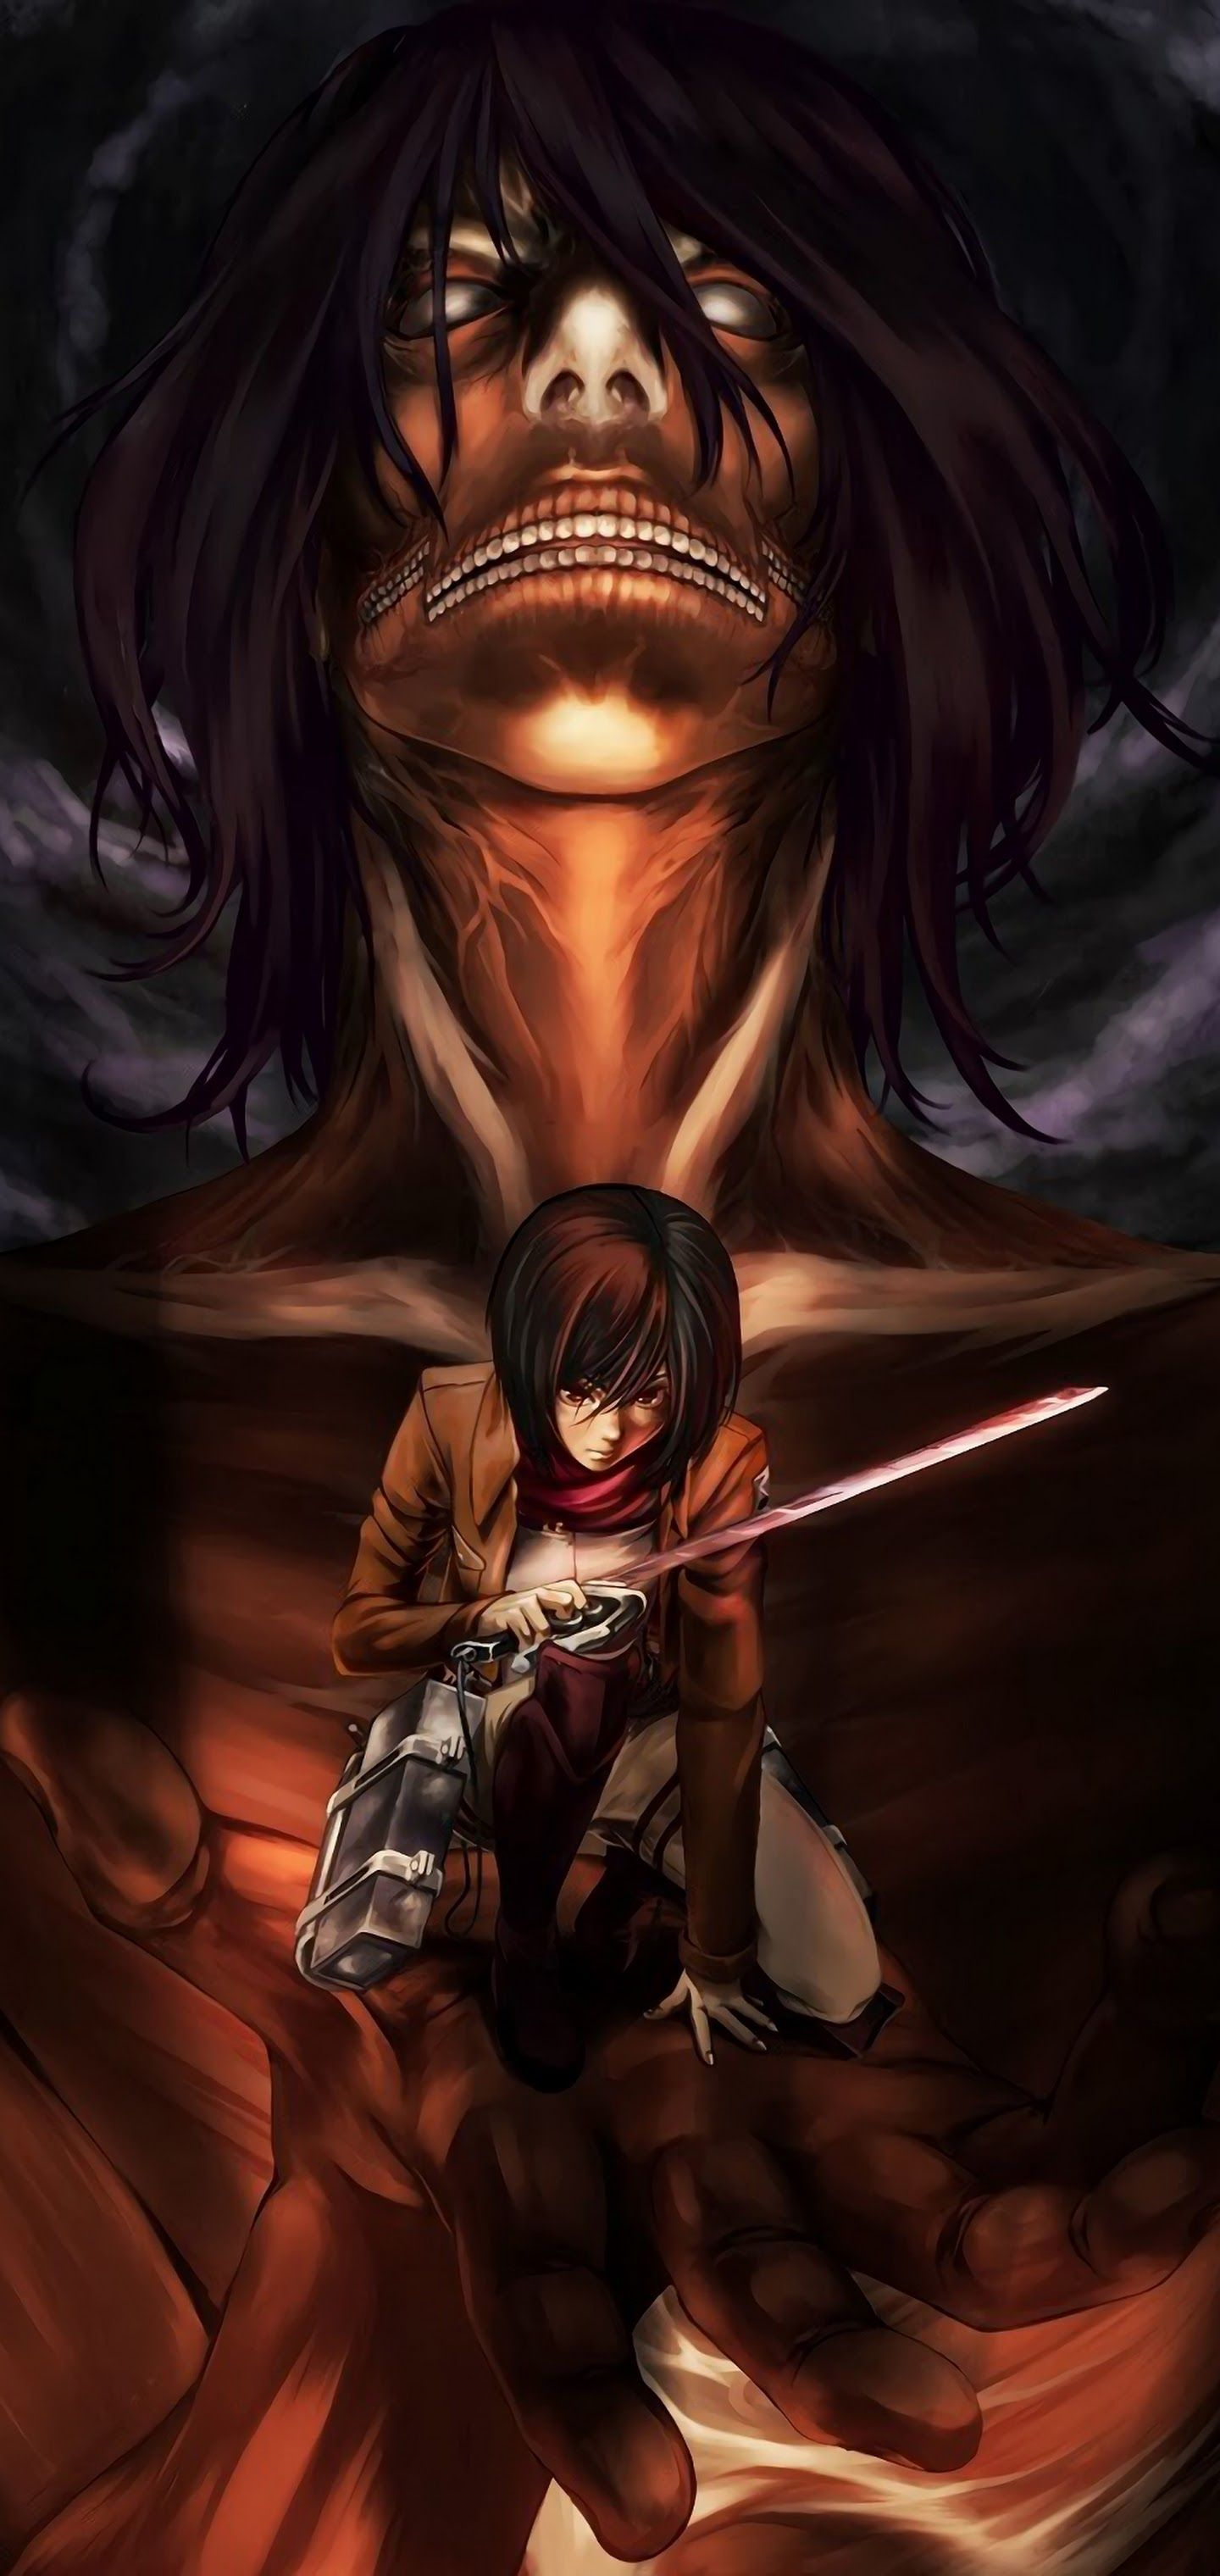 Attack On Titan Smartphone Wallpapers - Wallpaper Cave